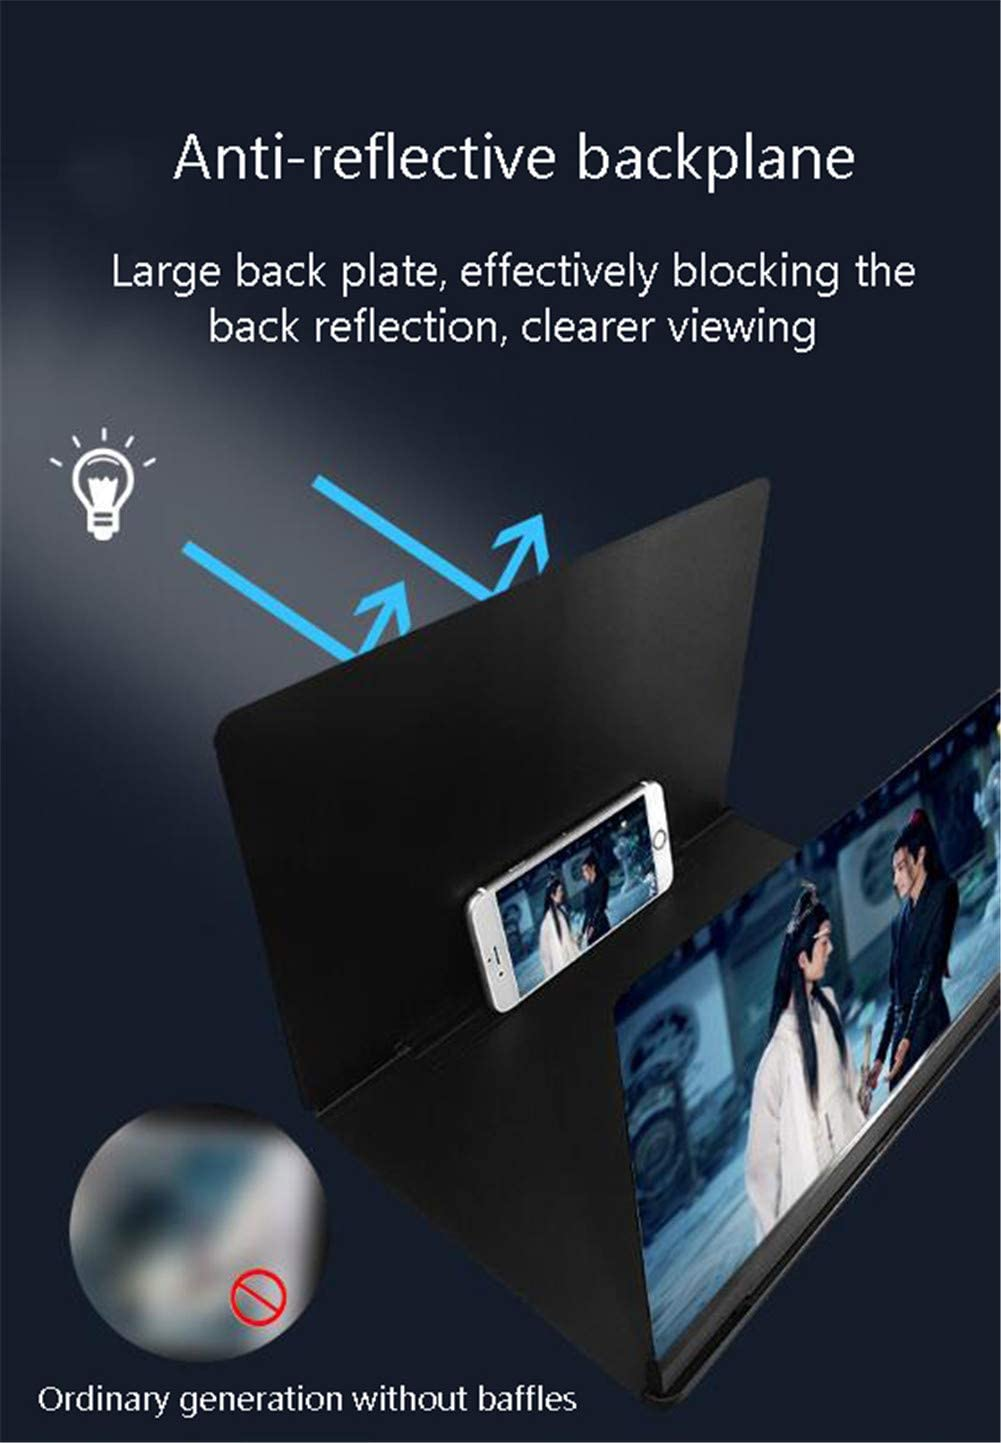 DevileLover Phone Screen Magnifier Protect Eyes Anti-Blue Light Enlarger Screen 16 inch 3D HD Movie Video Amplifier Zooms 3-4 Times Foldable Stand Holder Amplifier Screen